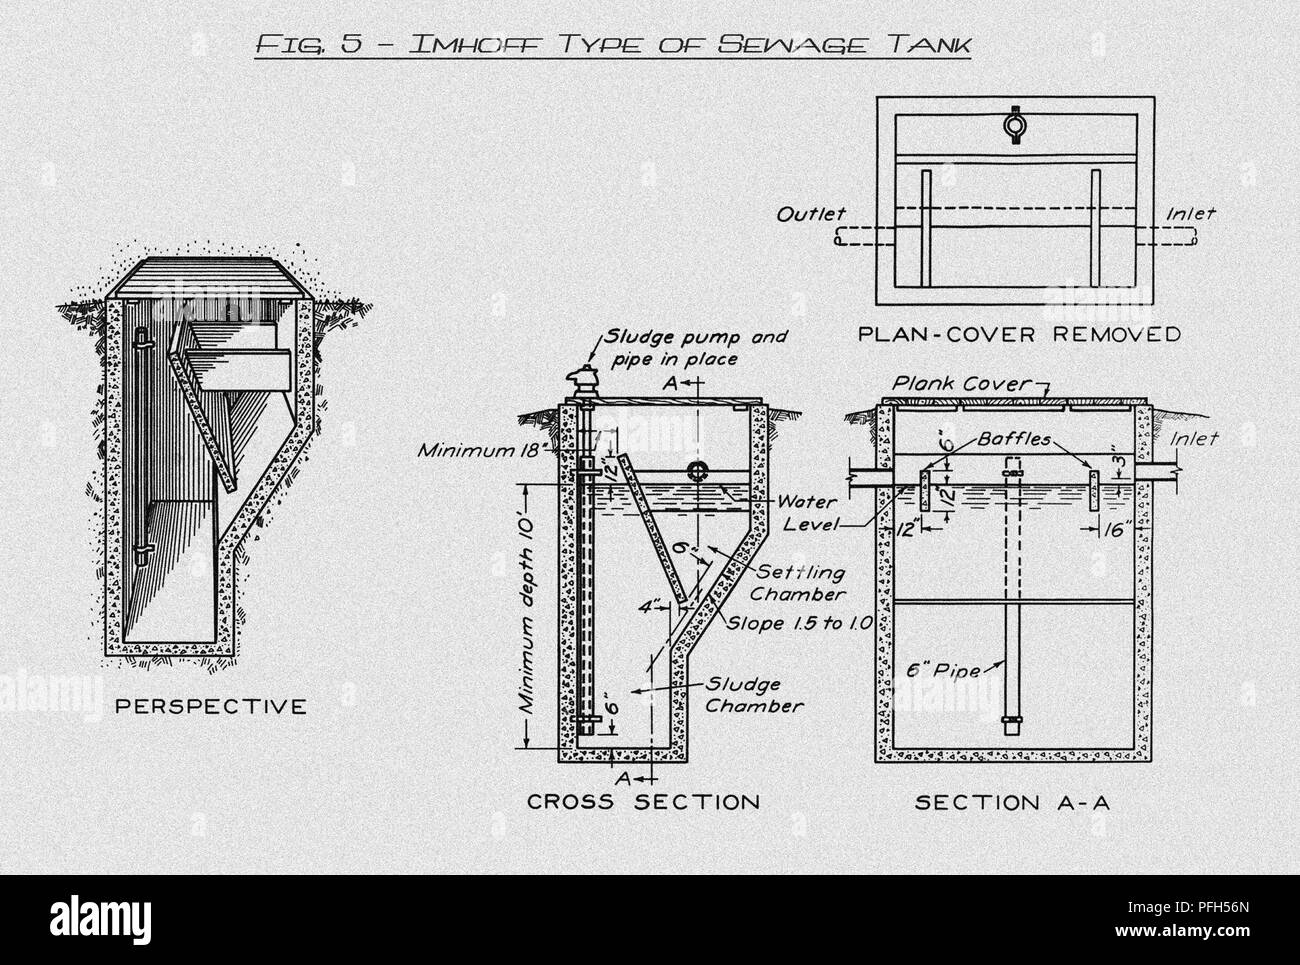 Tank Orthographic Diagram Excellent Electrical Wiring House Schematic Quadrilateral Cross Sectional Perspective And Projection Of An Imhoff Rh Alamy Com Cutaway